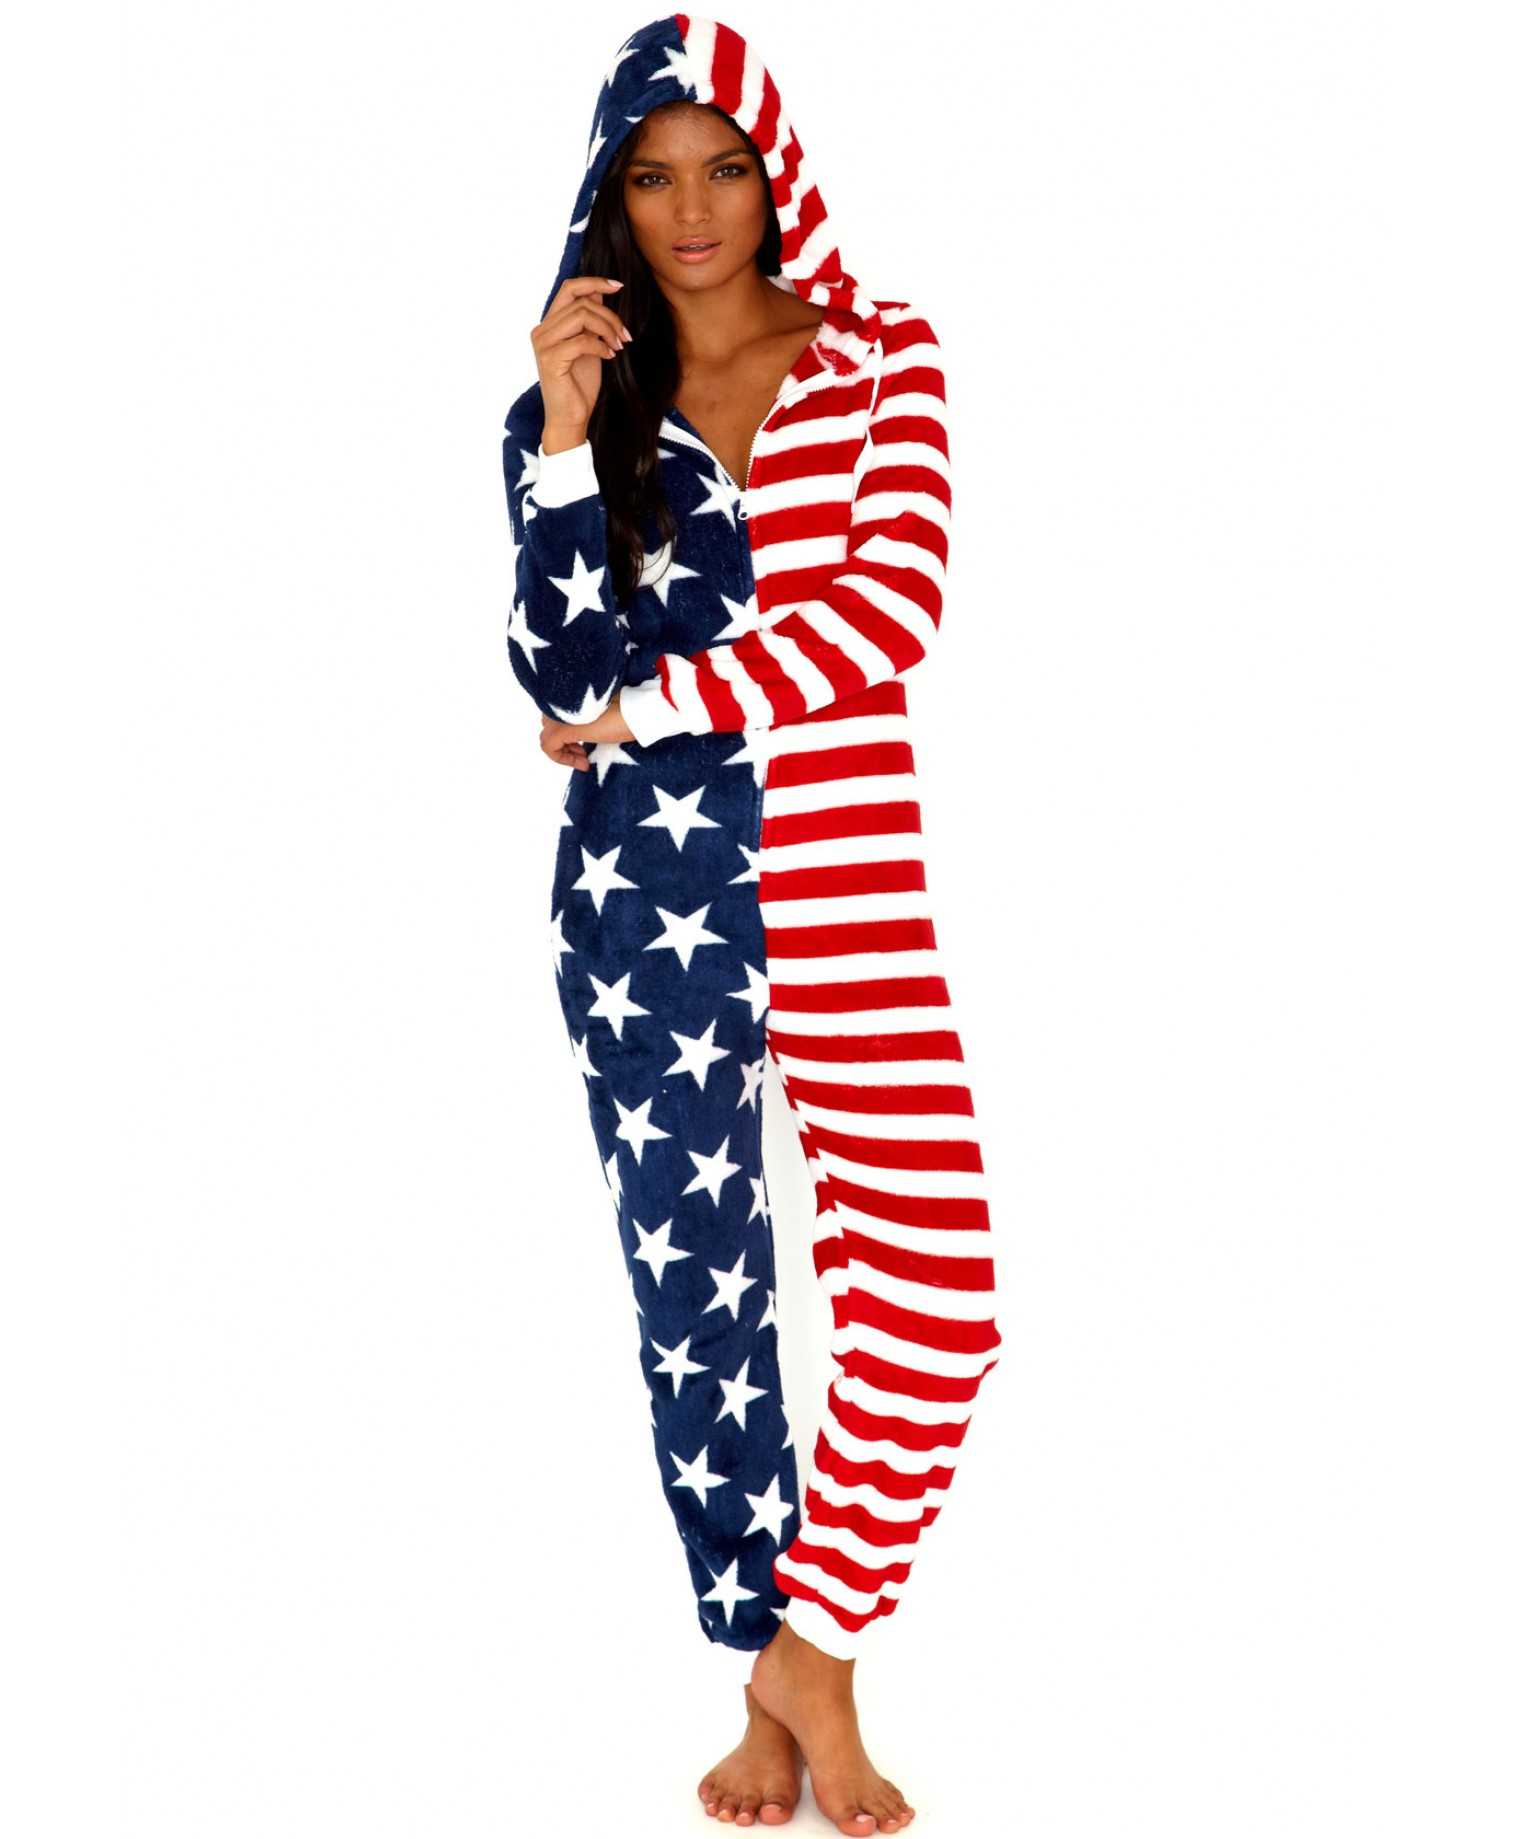 a6b7433e0 American Flag Onesie Pajamas - Best Picture Of Flag Imagesco.Org